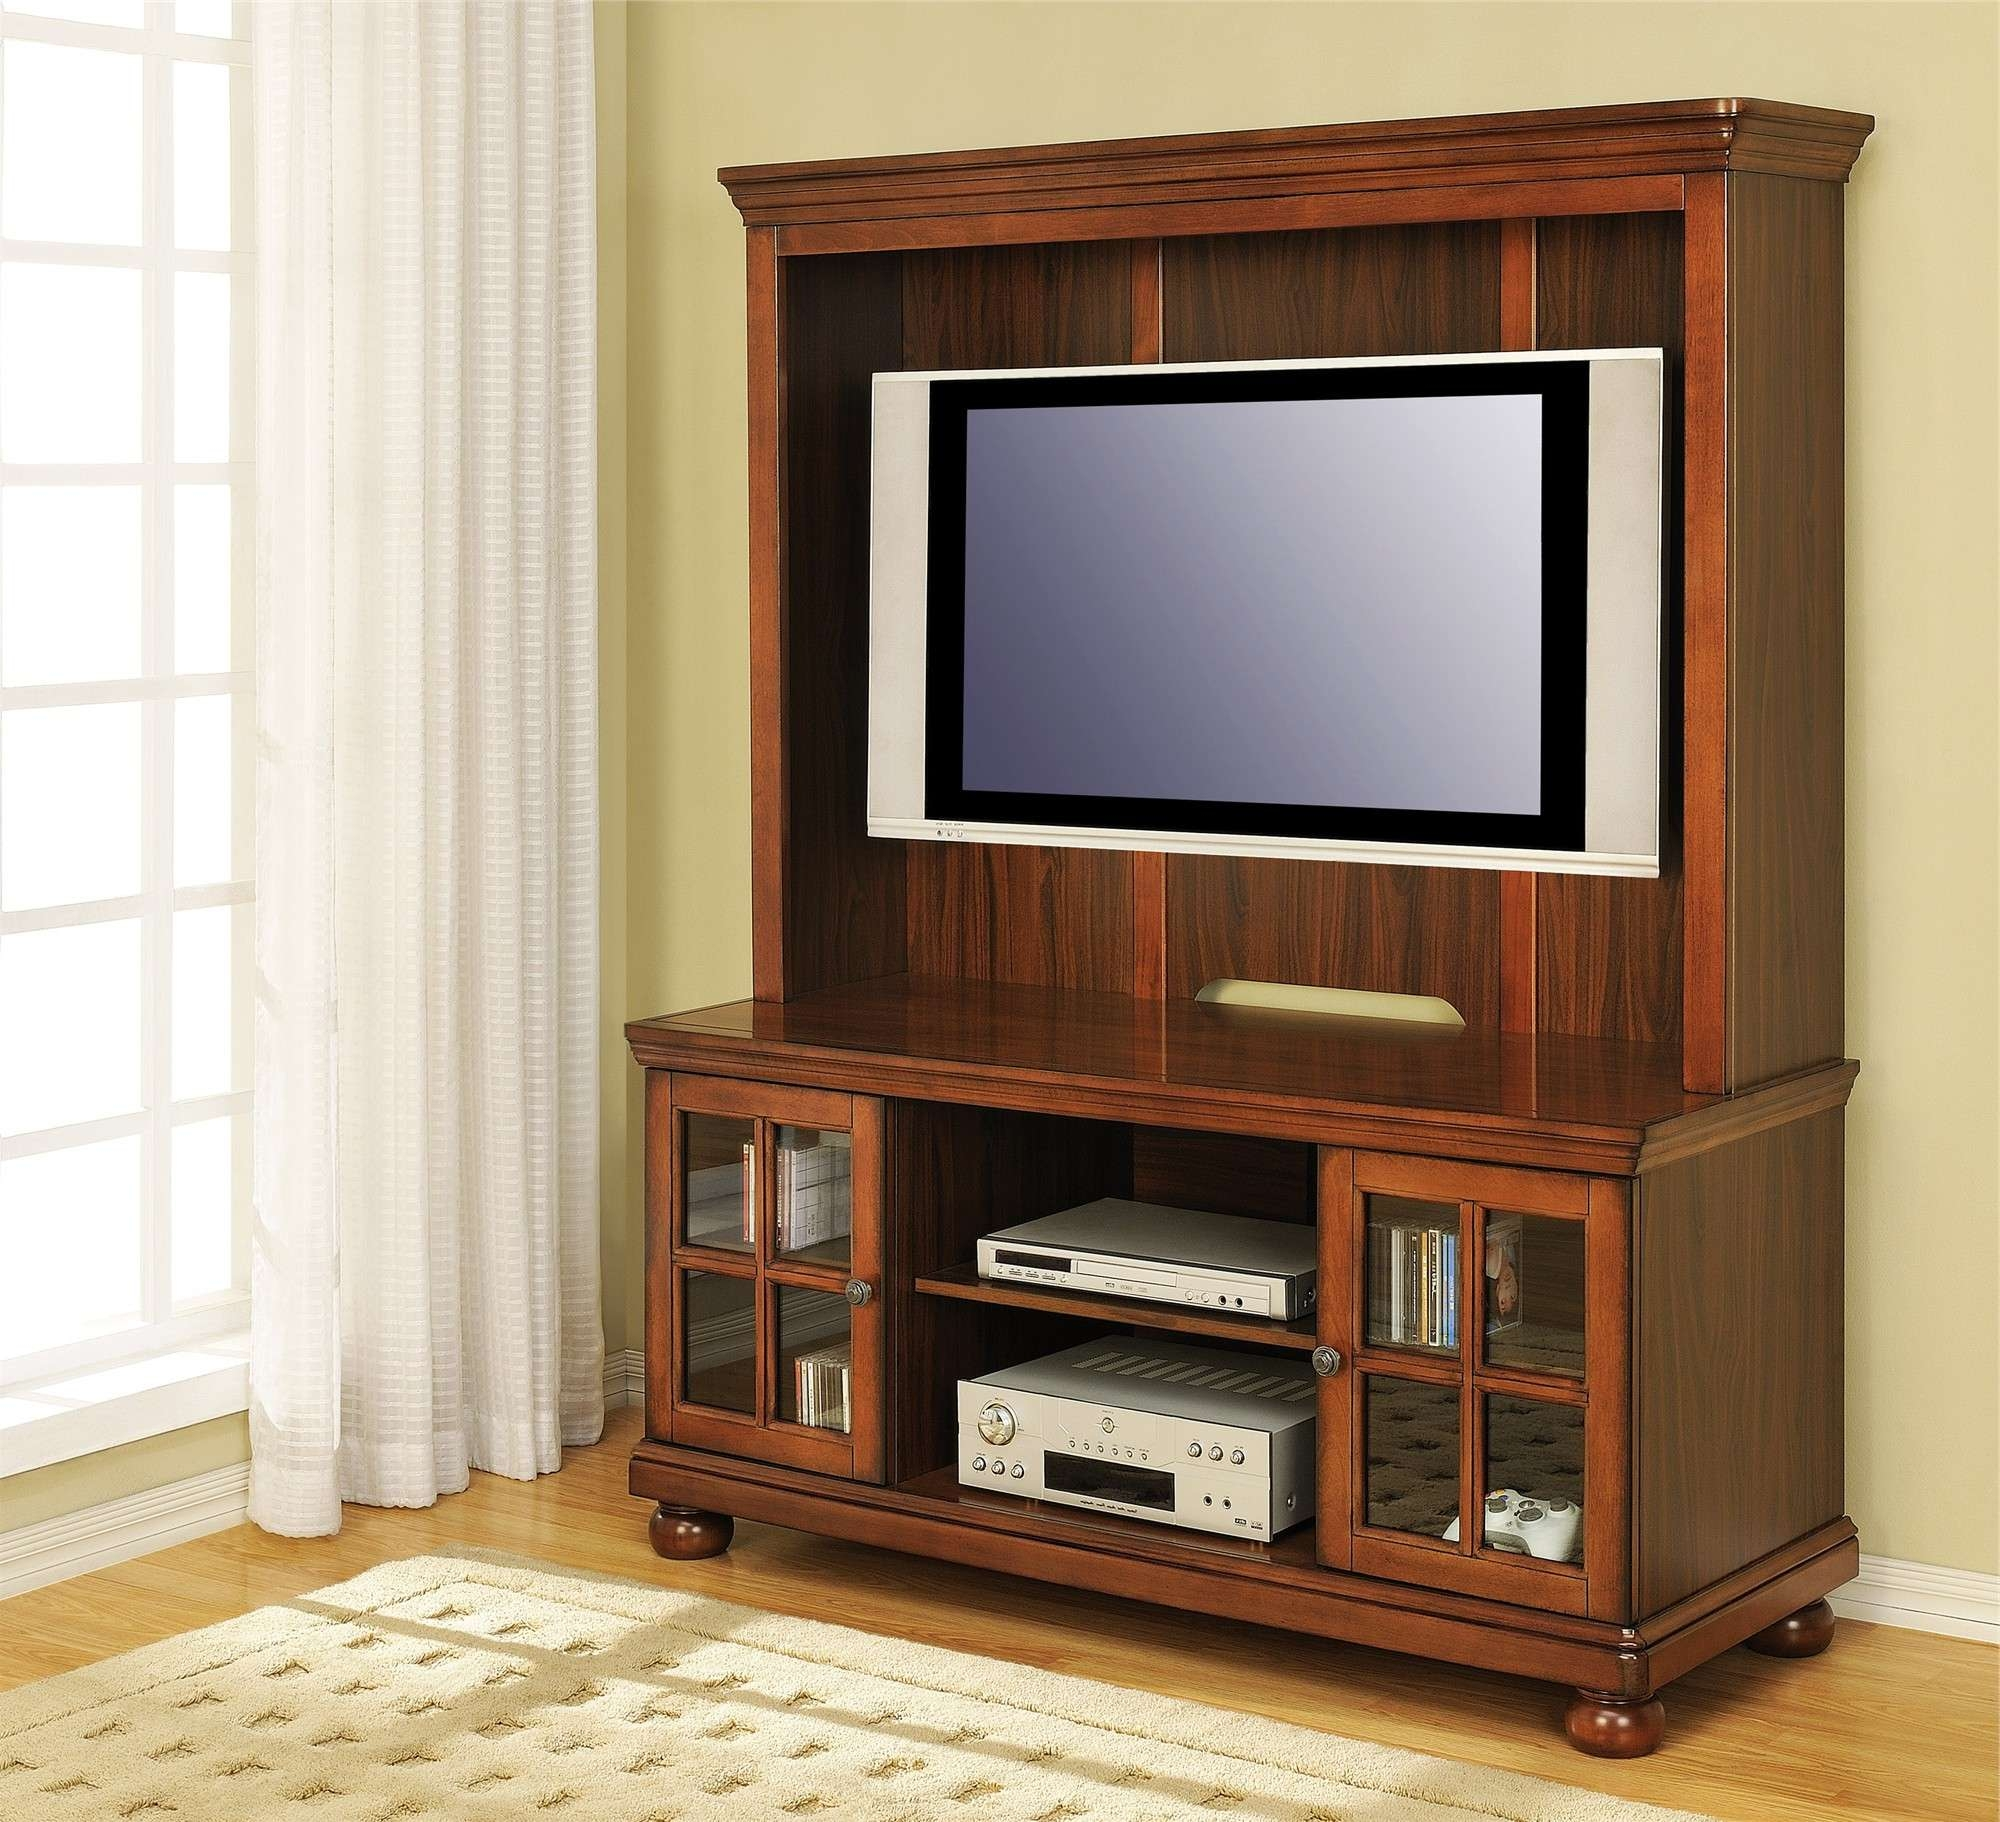 Modern Brown Oak Wood Media Cabinet With Mounted Tv Of Dazzling For Corner Oak Tv Stands For Flat Screen (View 6 of 15)